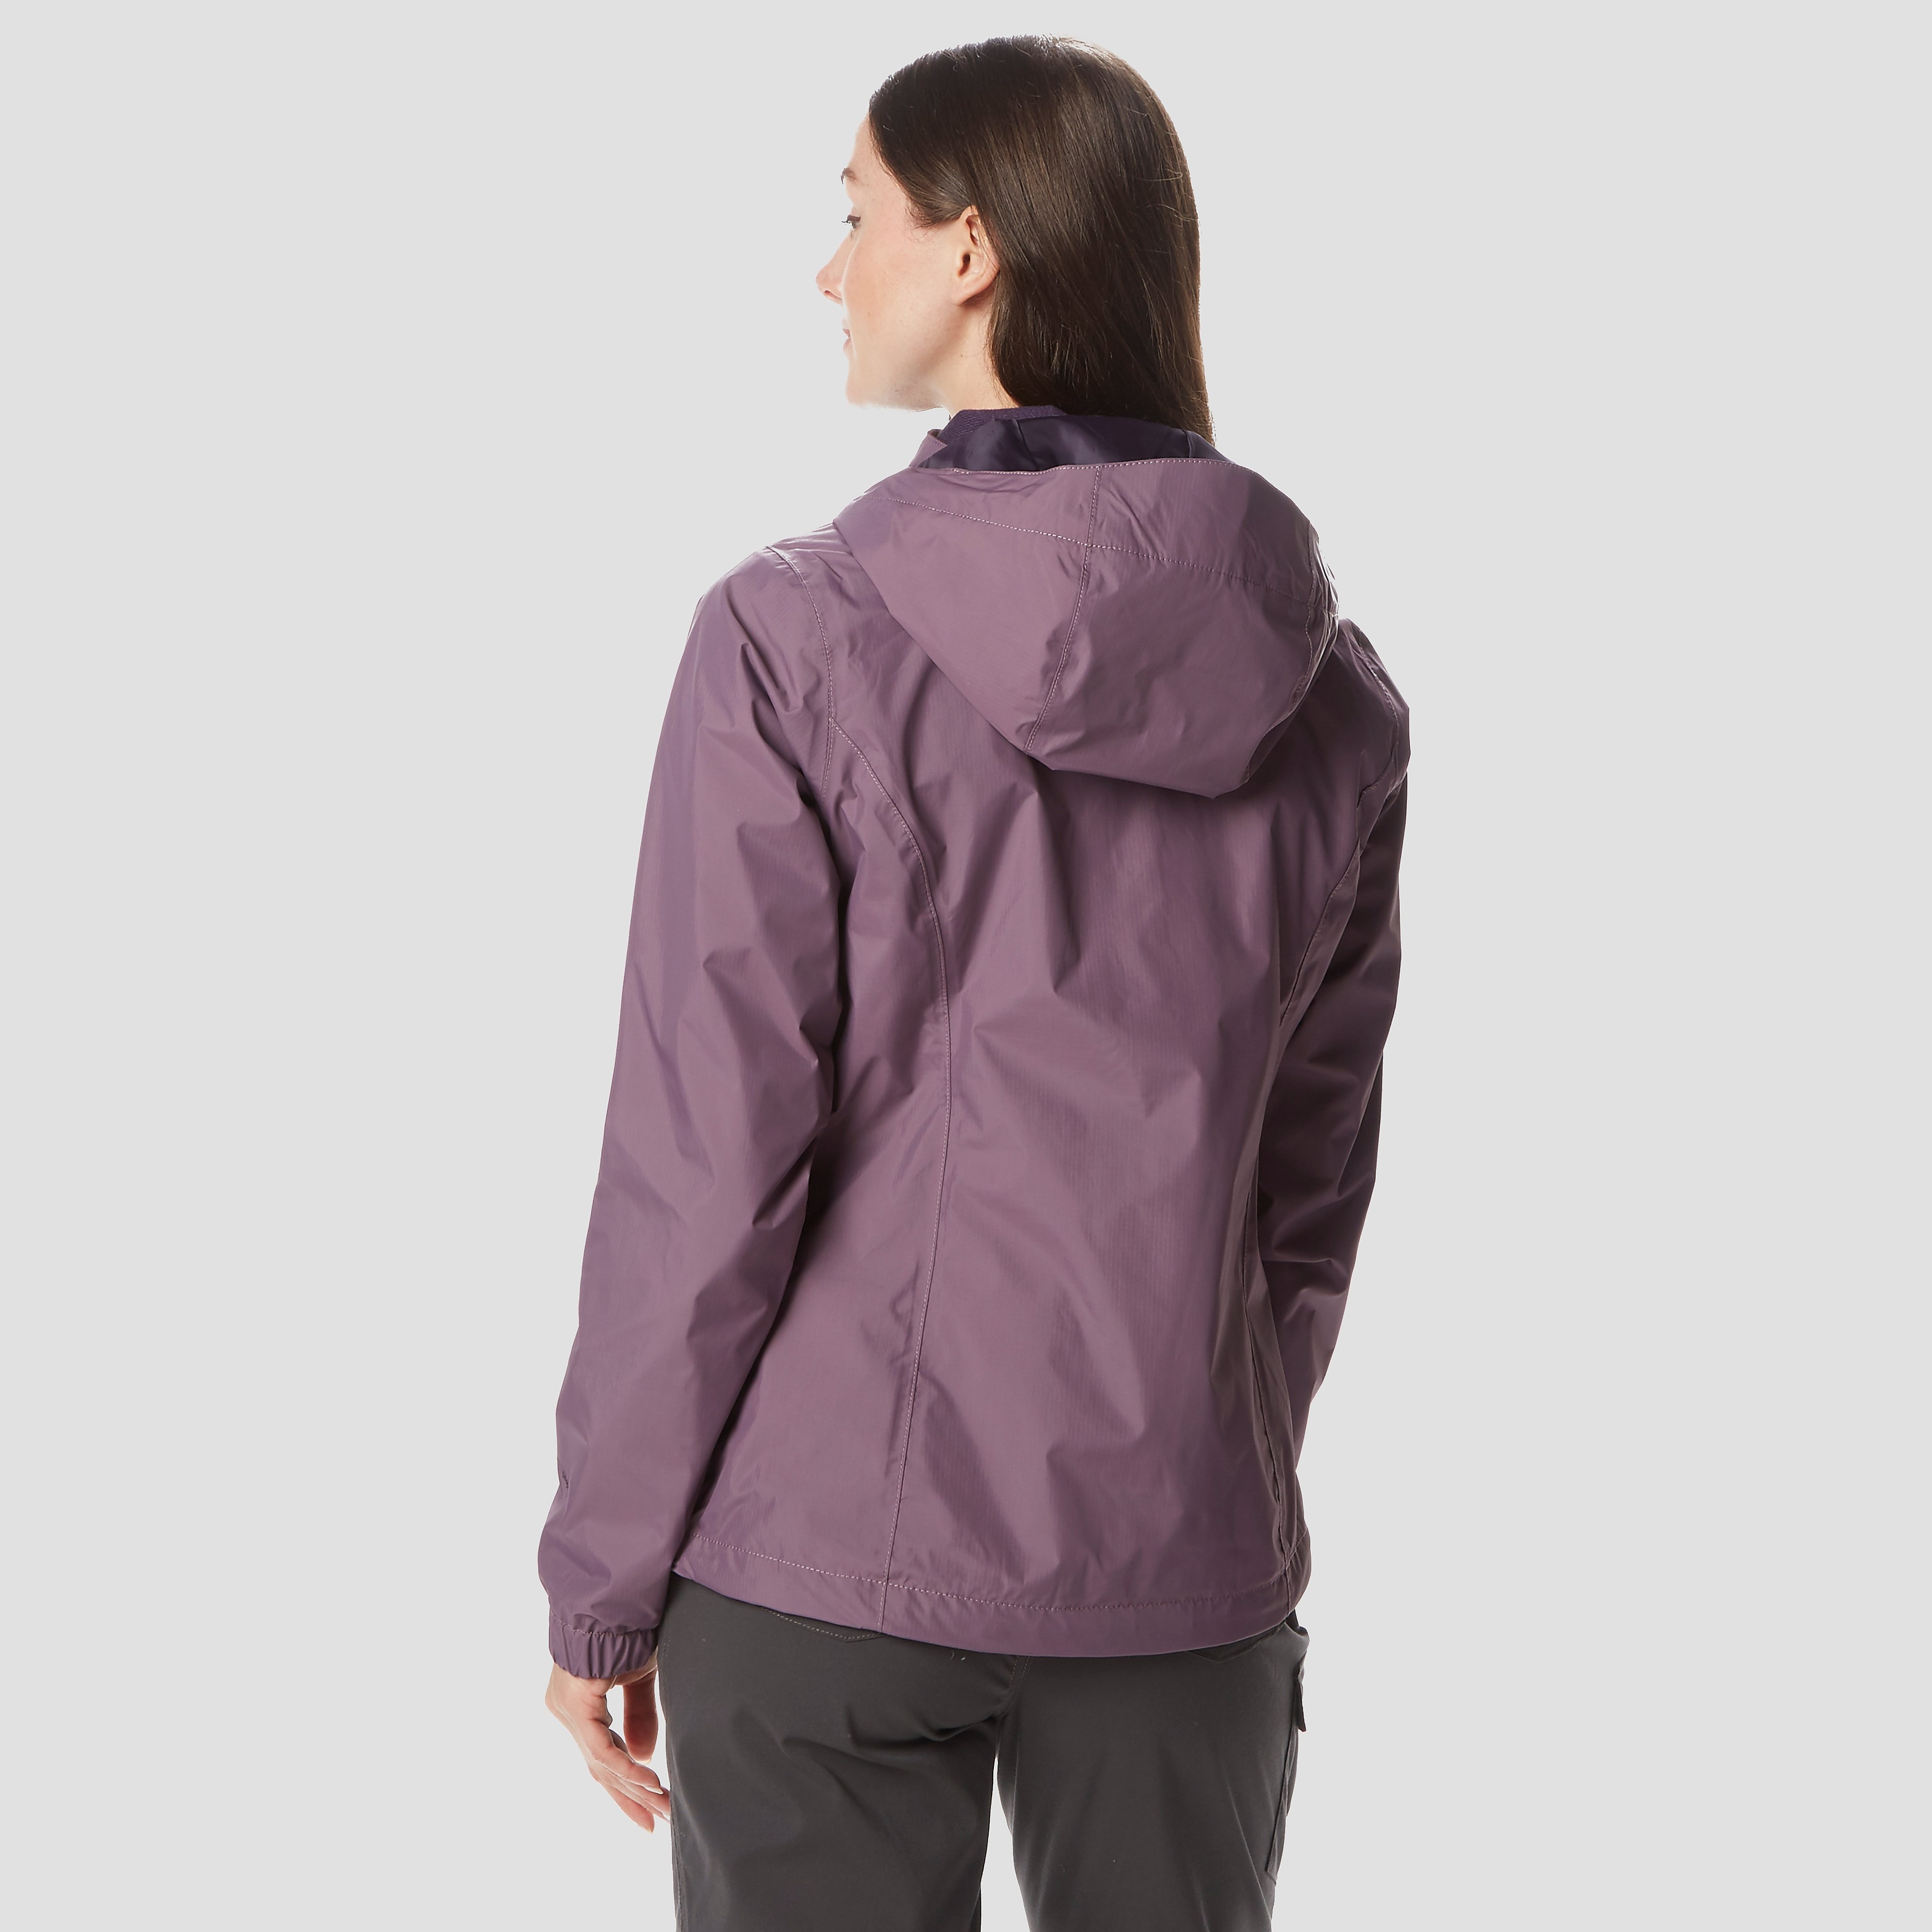 The North Face DryVent Resolve 2 Women's Jacket